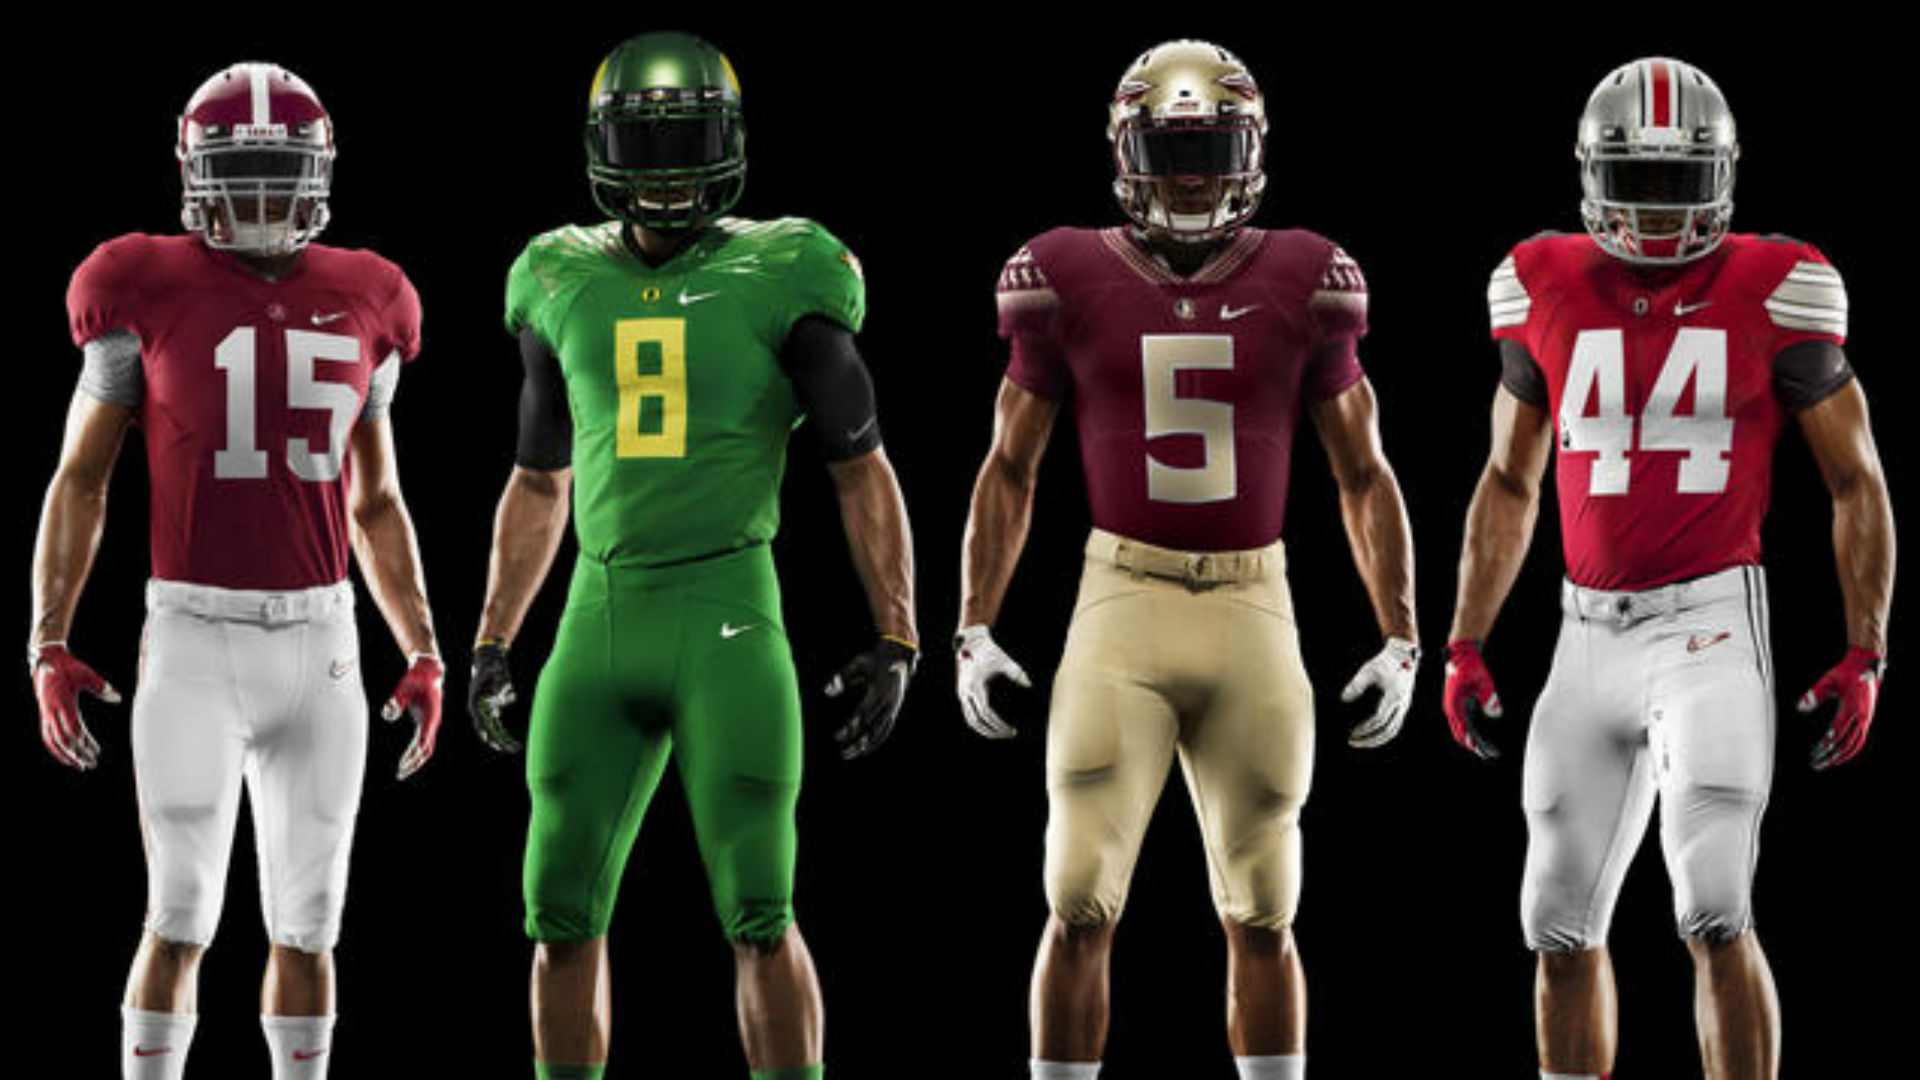 783e81955 Nike unveils College Football Playoff uniforms